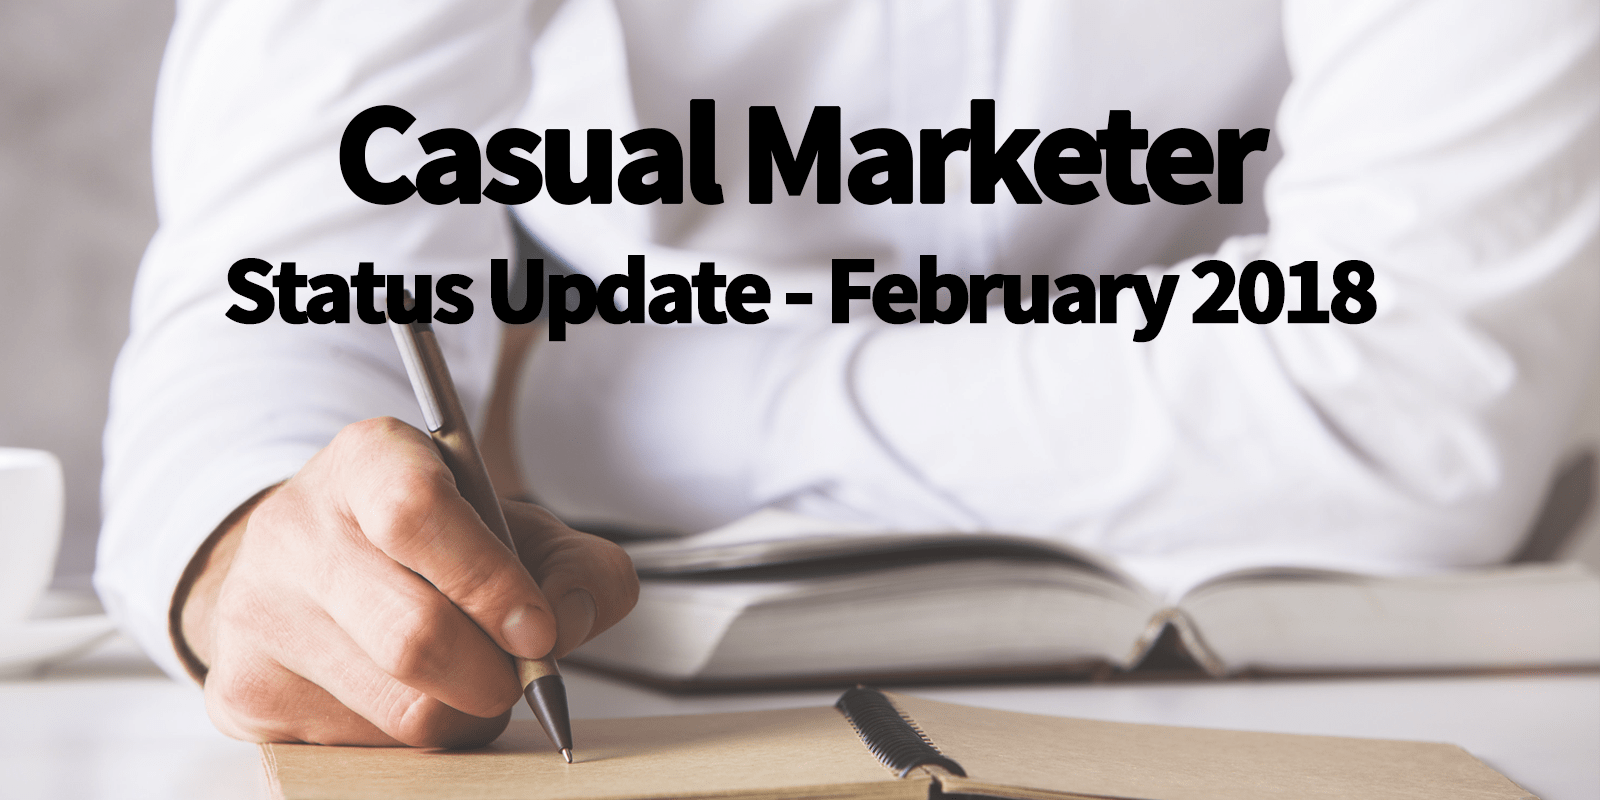 Casual Marketer Monthly Review February 2018